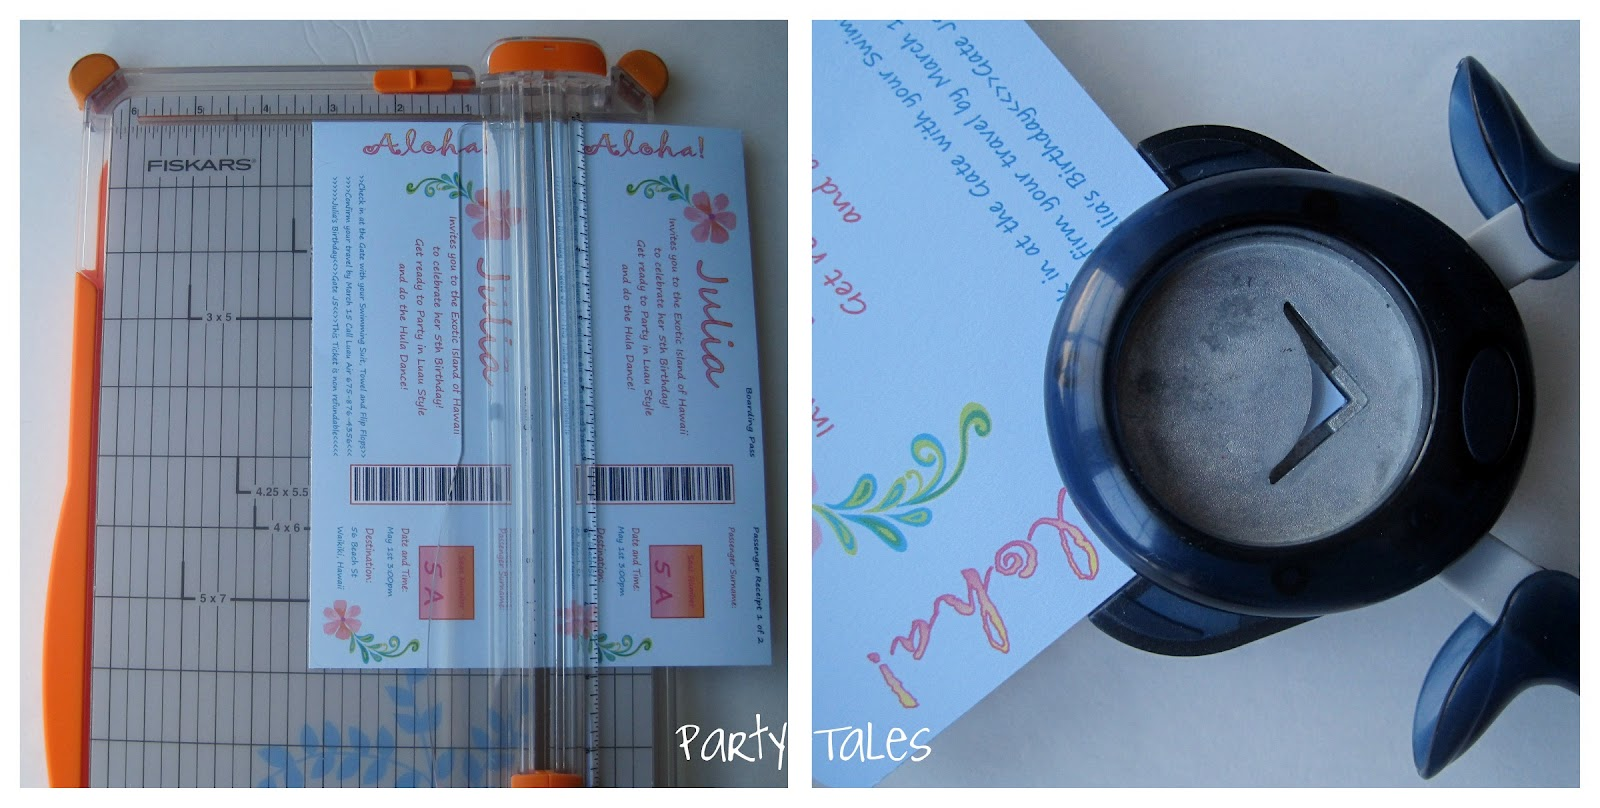 Party tales tutorial diy how to make a boarding pass invitation tutorial diy how to make a boarding pass invitation stopboris Image collections